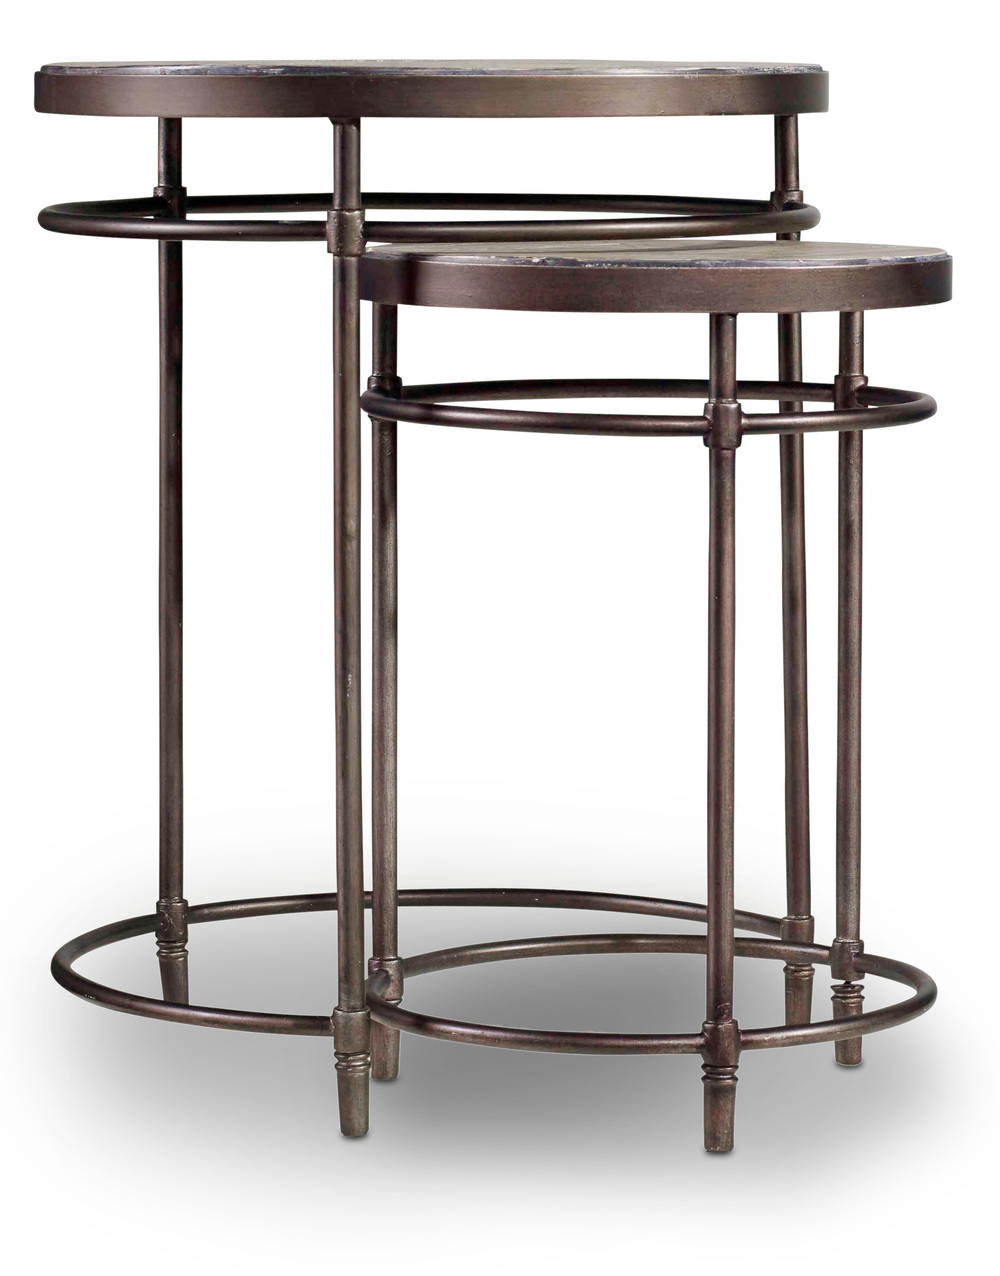 Hooker Furniture - Saint Armand Nest of Tables